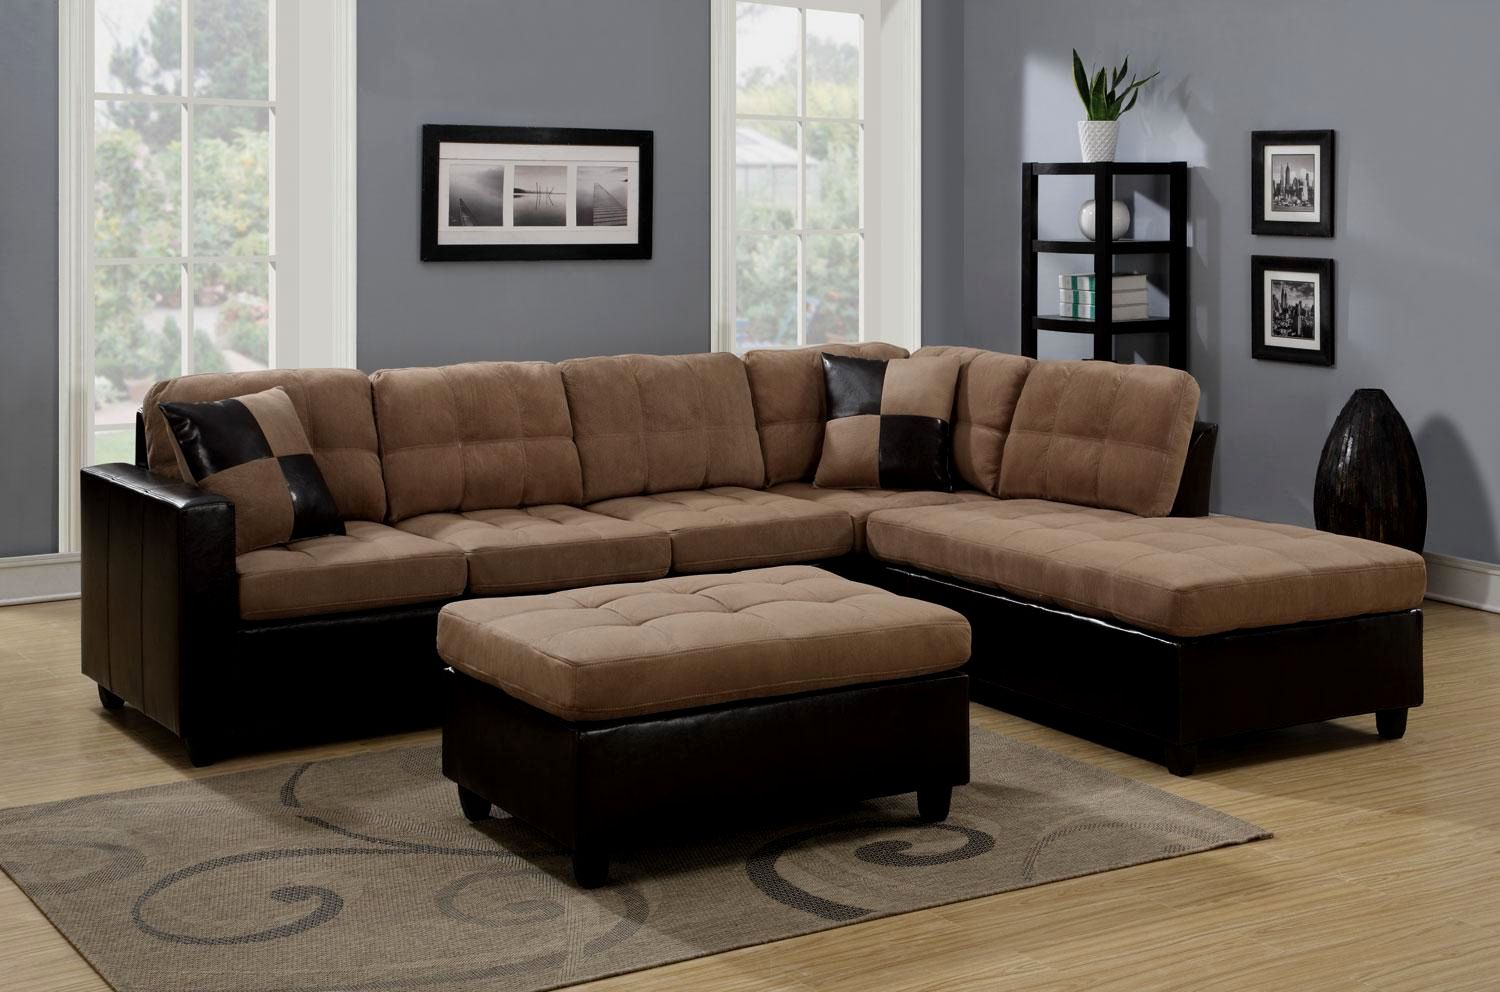 best of microfiber sectional sofa construction-Elegant Microfiber Sectional sofa Photo